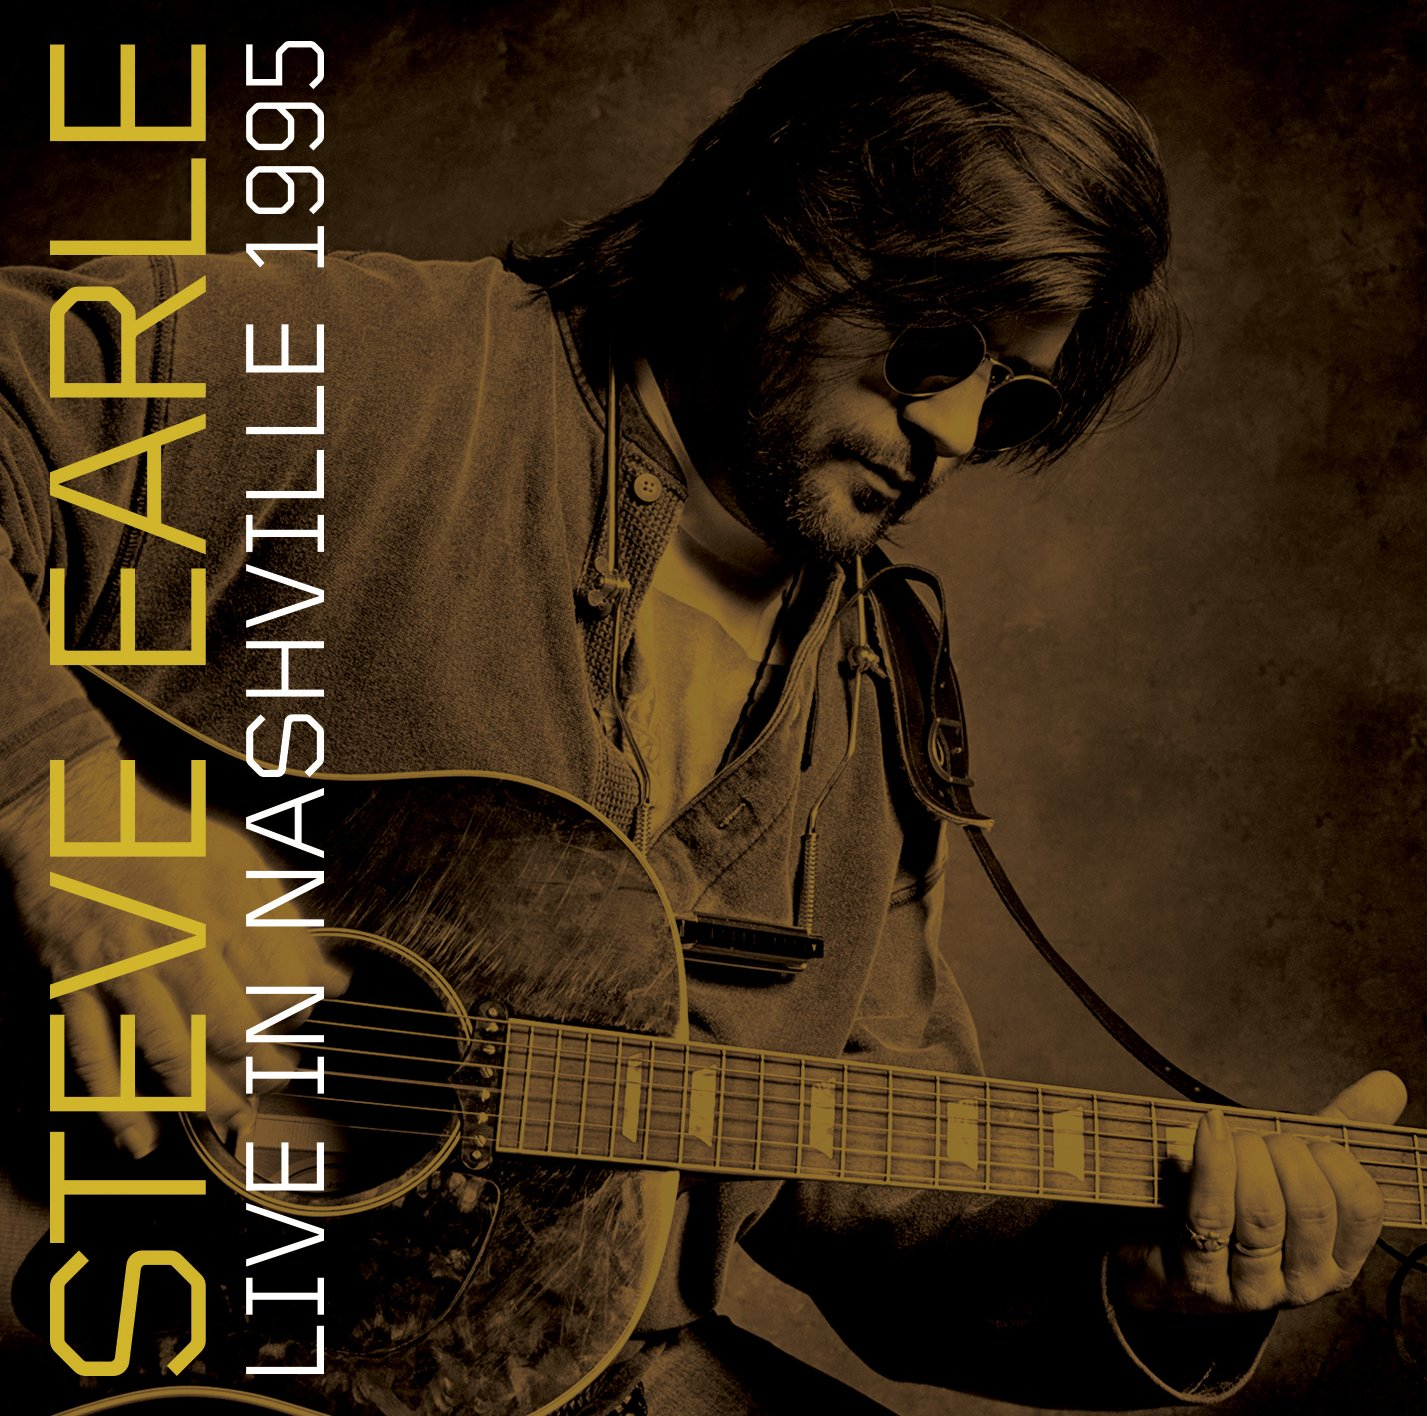 Steve Earle - Live In Nashville 1995 - Amazon.com Music